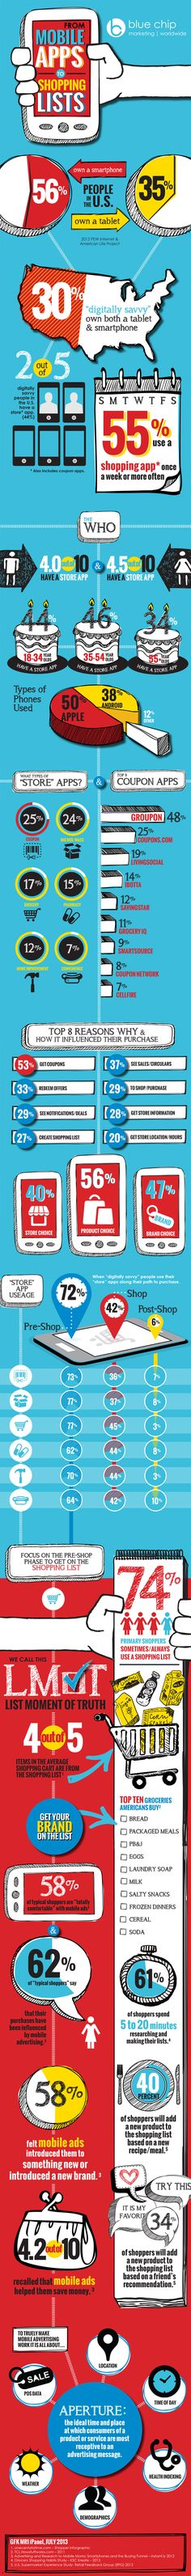 """Mobilizing Shoppers """"List moment of Truth"""" Infographic: Holiday Guide to Mobile Marketing   Adweek"""